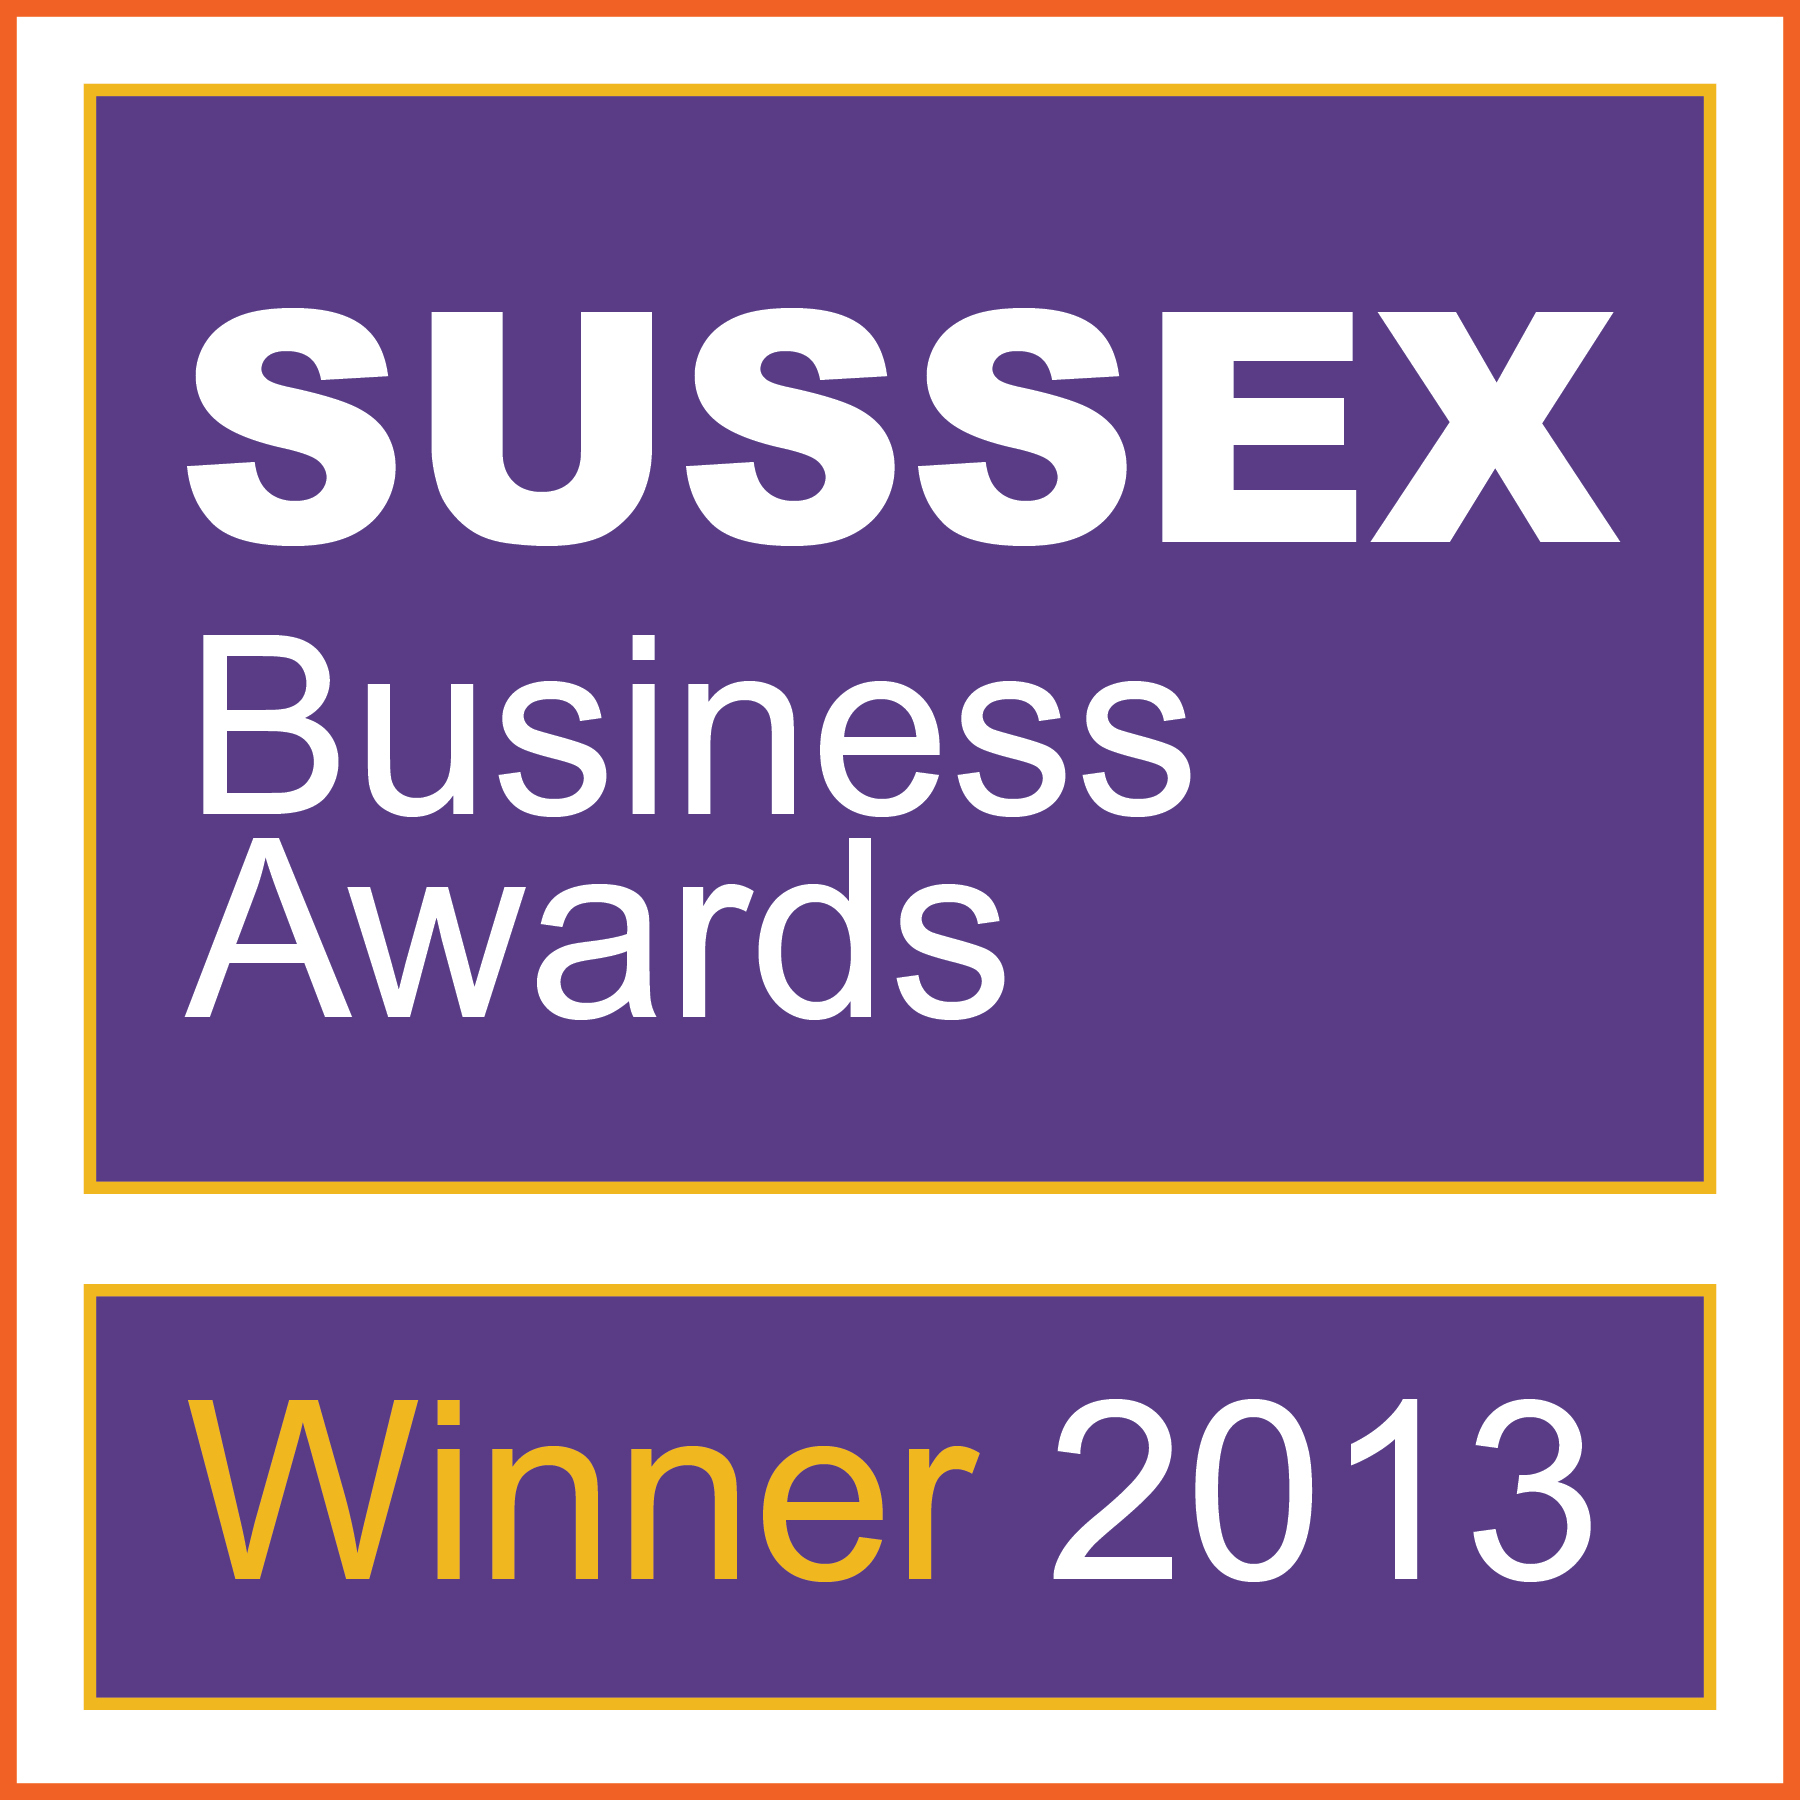 sussex business awards winner logo